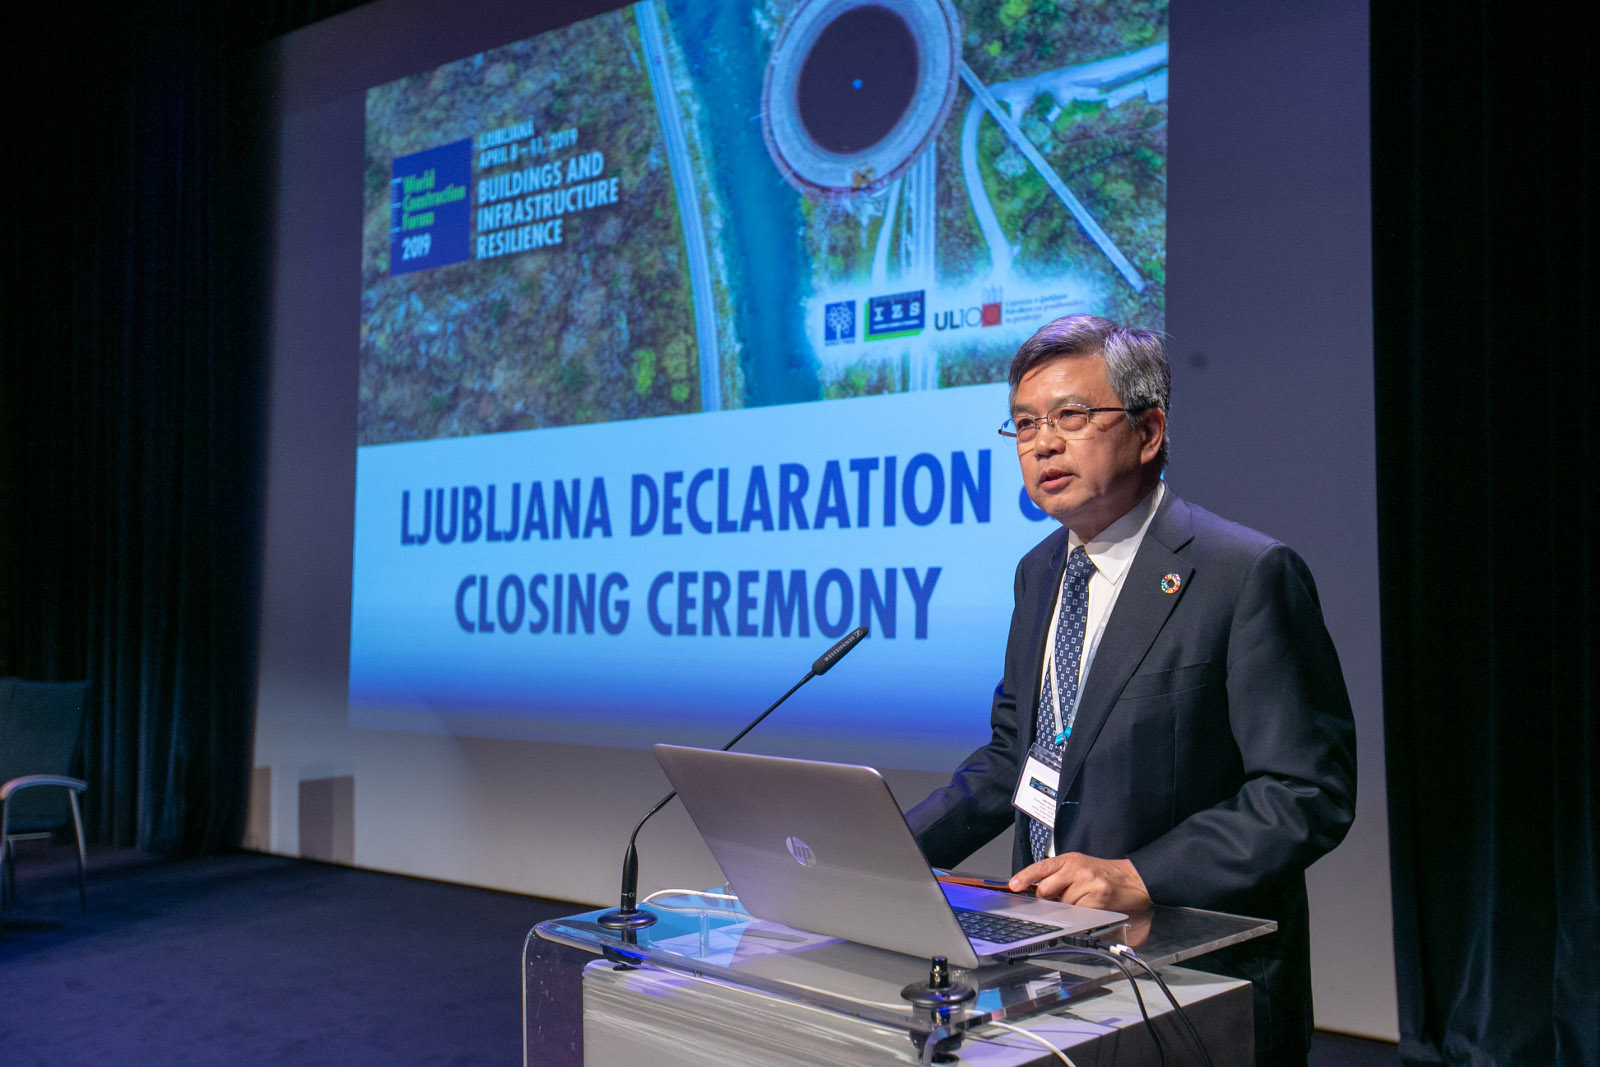 World Construction Forum 2019 in Ljubljana was a success